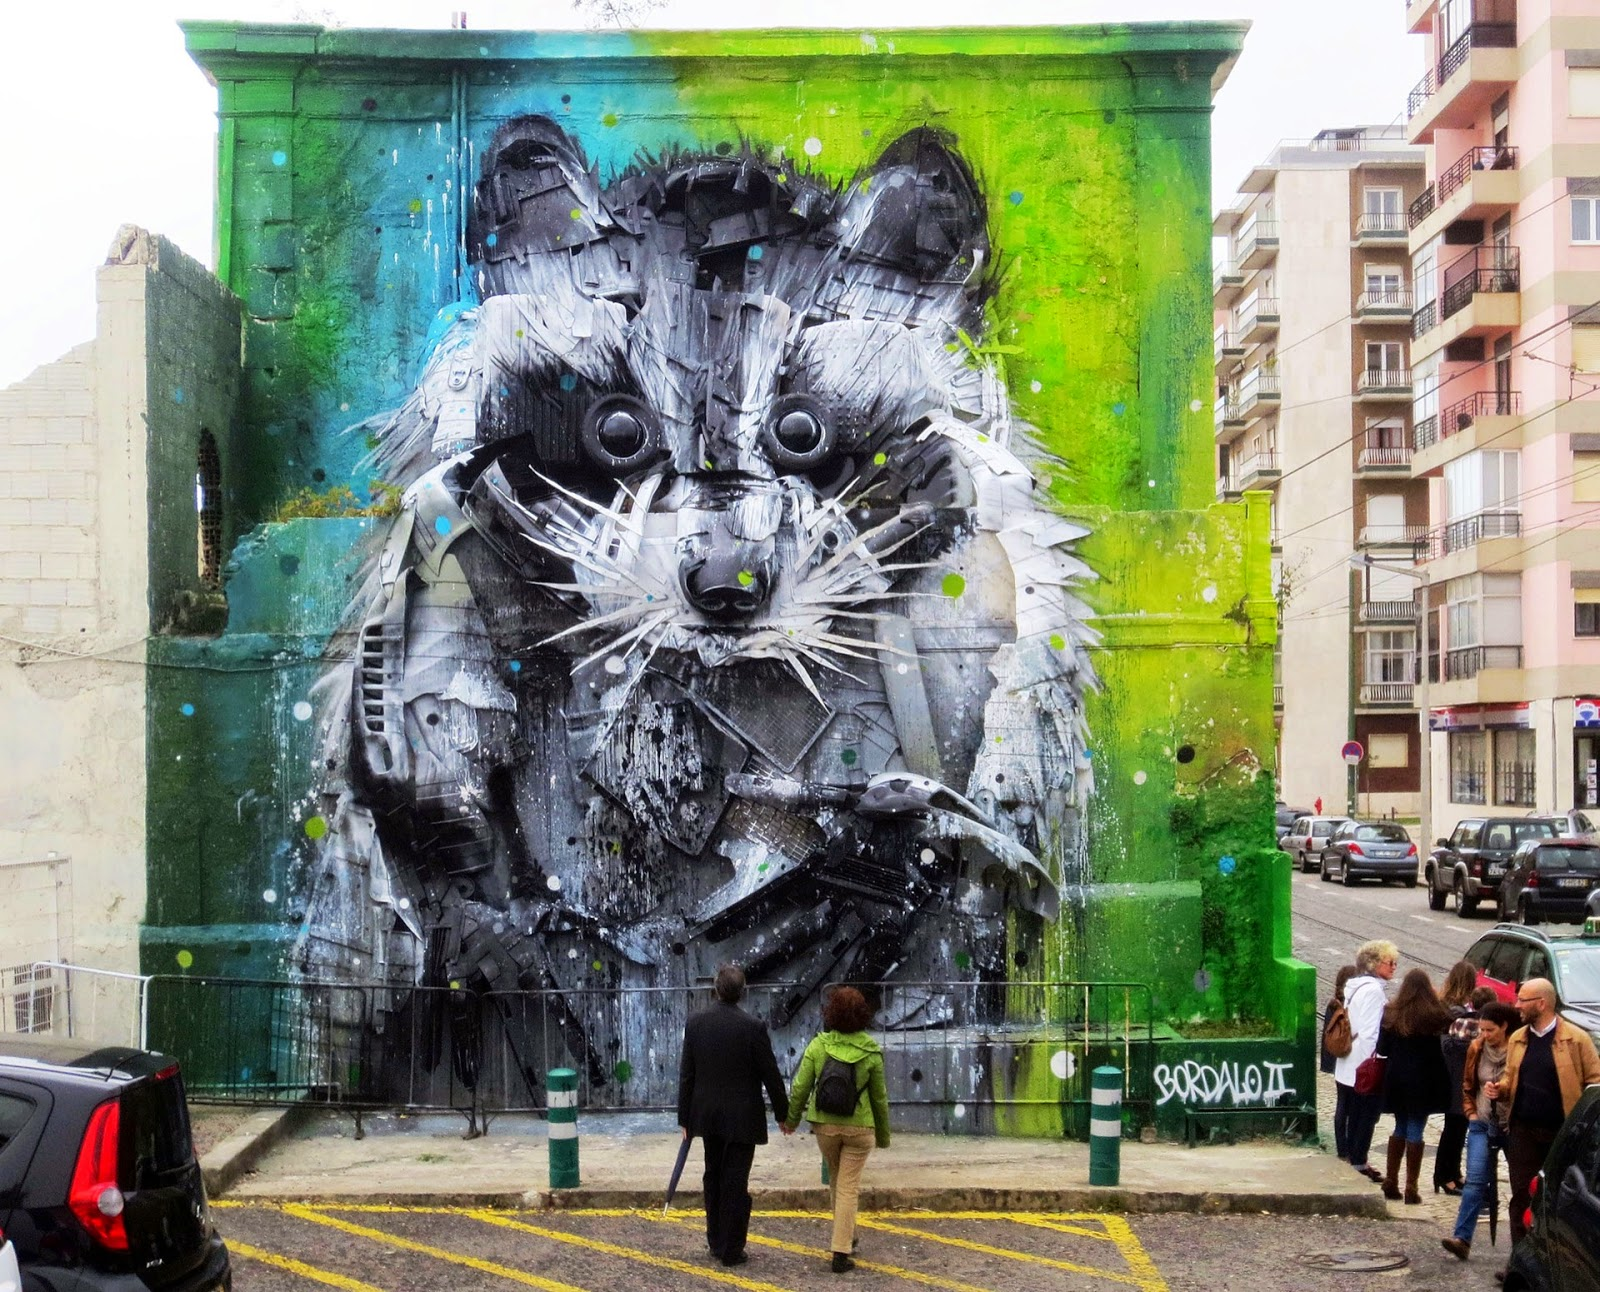 The best street art found in Portugal